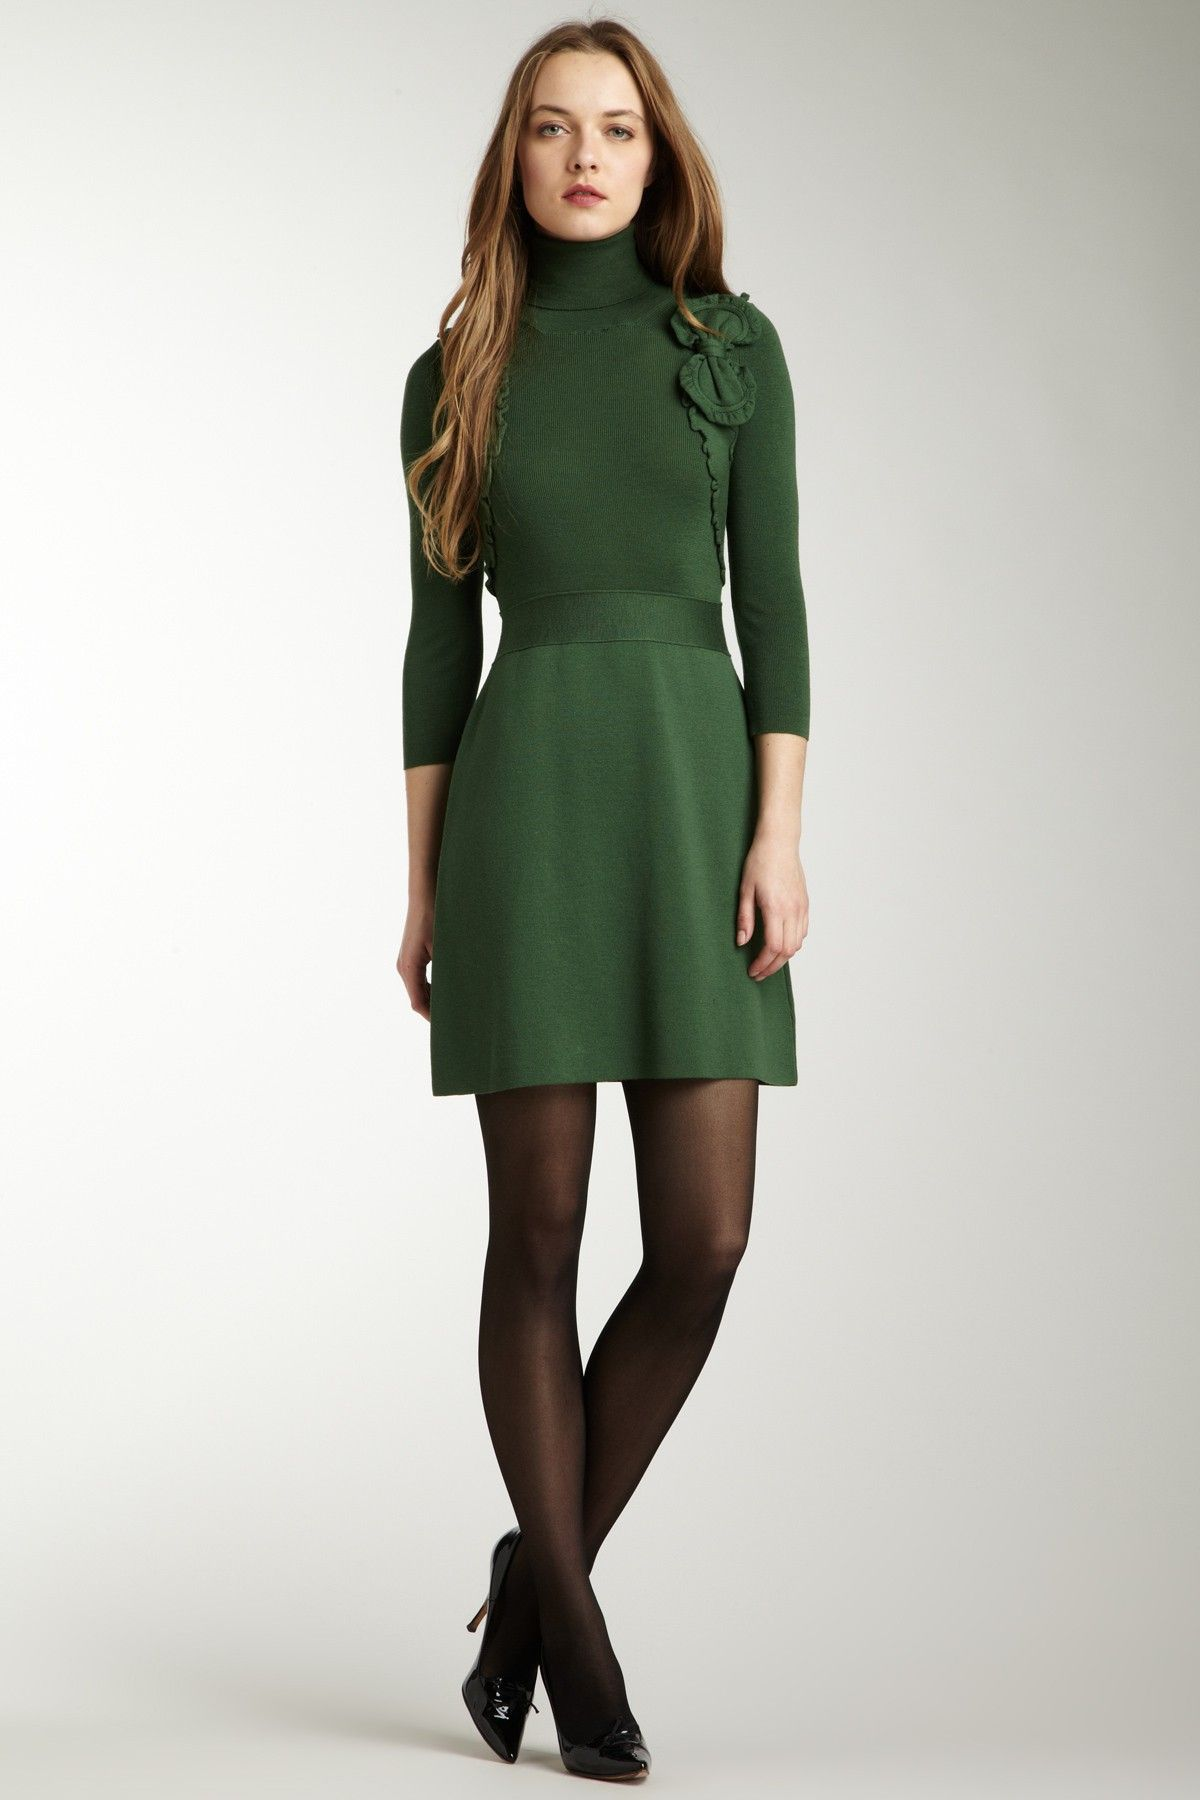 RED Valentino Knit Turtle Neck Sweater Dress | Casual Chic ...